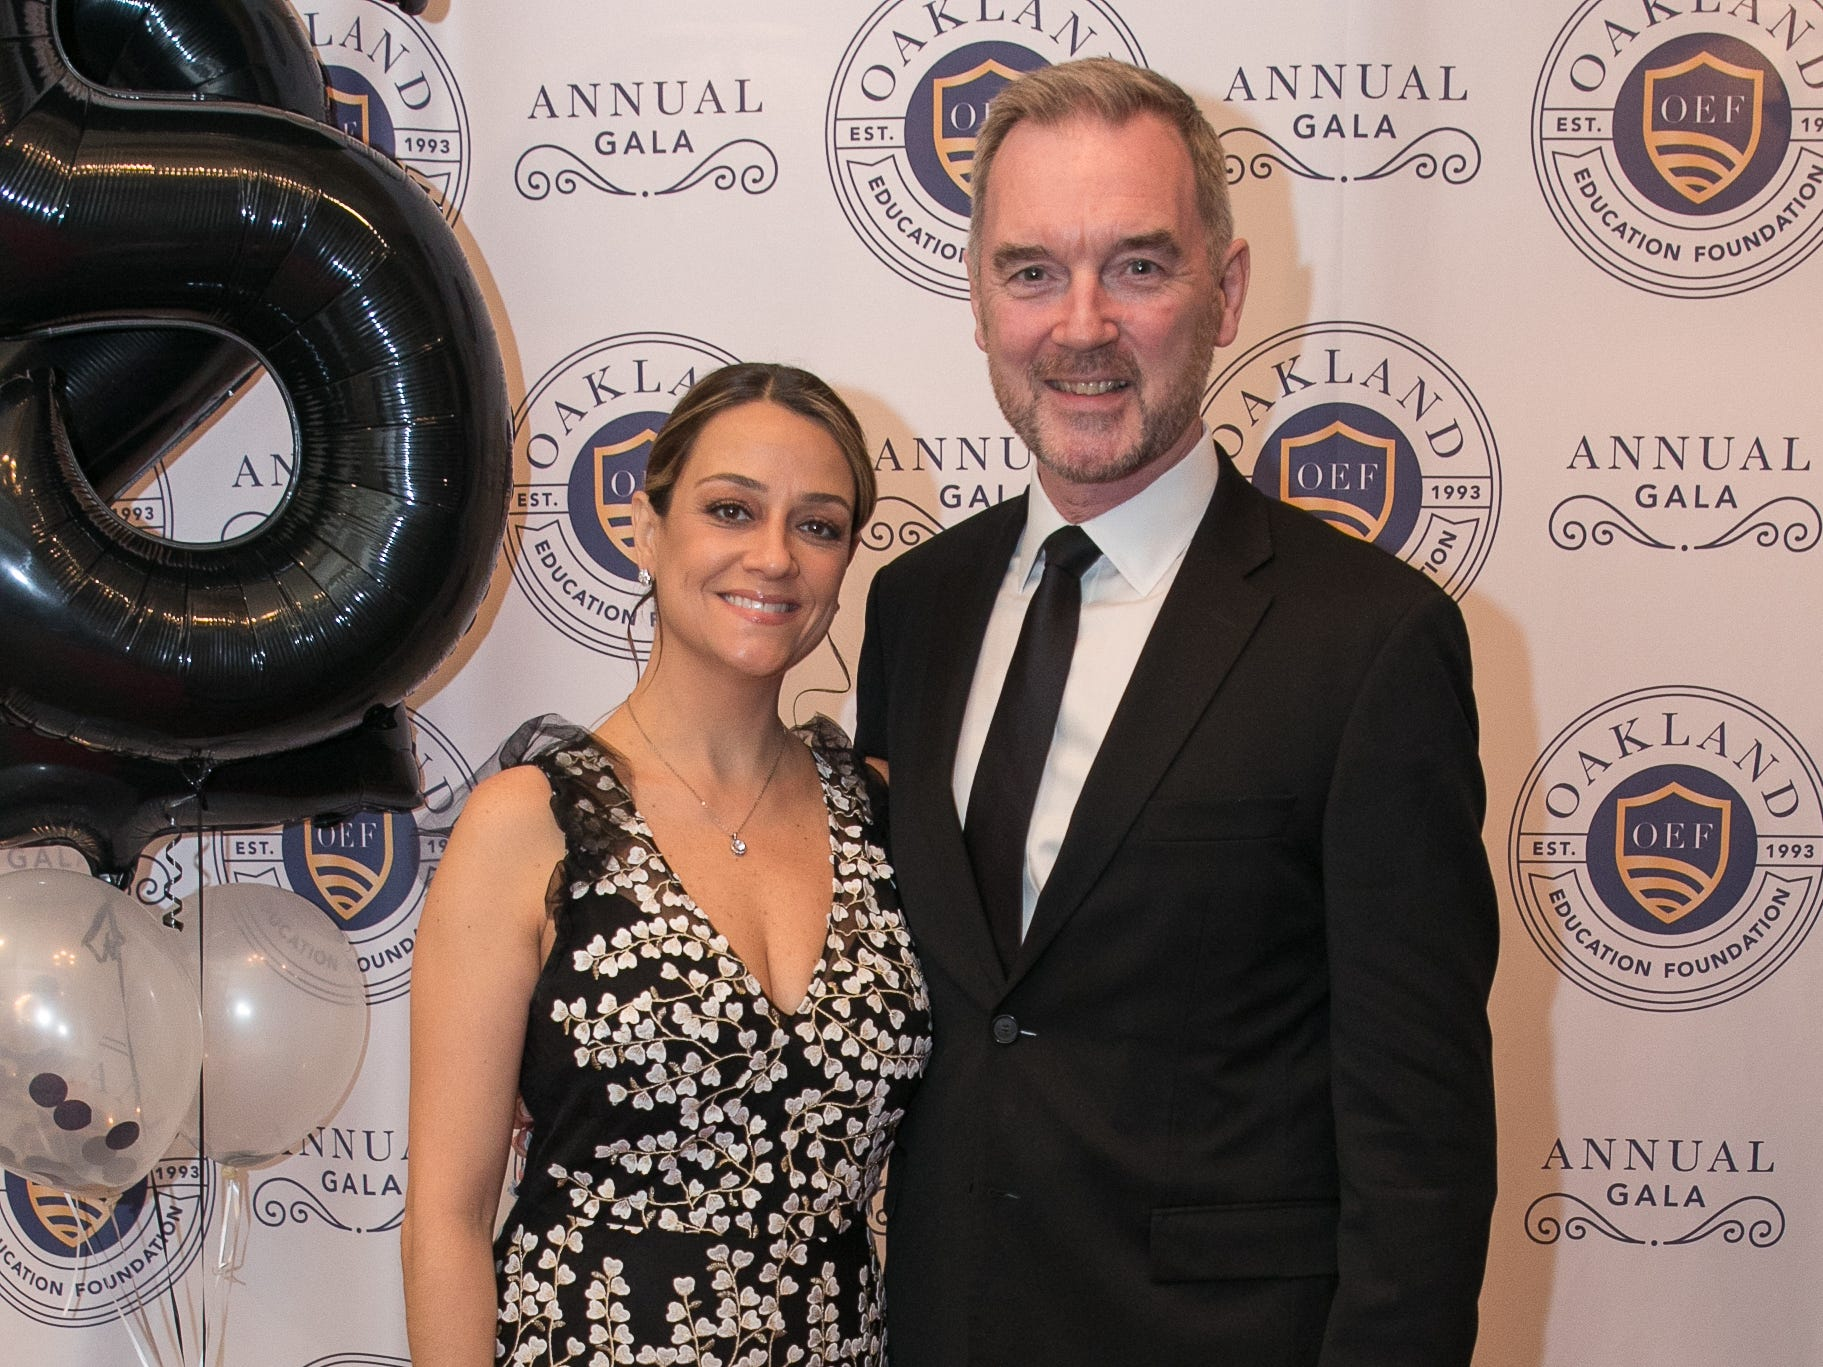 Andrea and Michael Caipens. The Oakland Education Foundation held their 25th Anniversary Casino Night Gala at Preakness Hills Country Club in Wayne. 03/16/2019